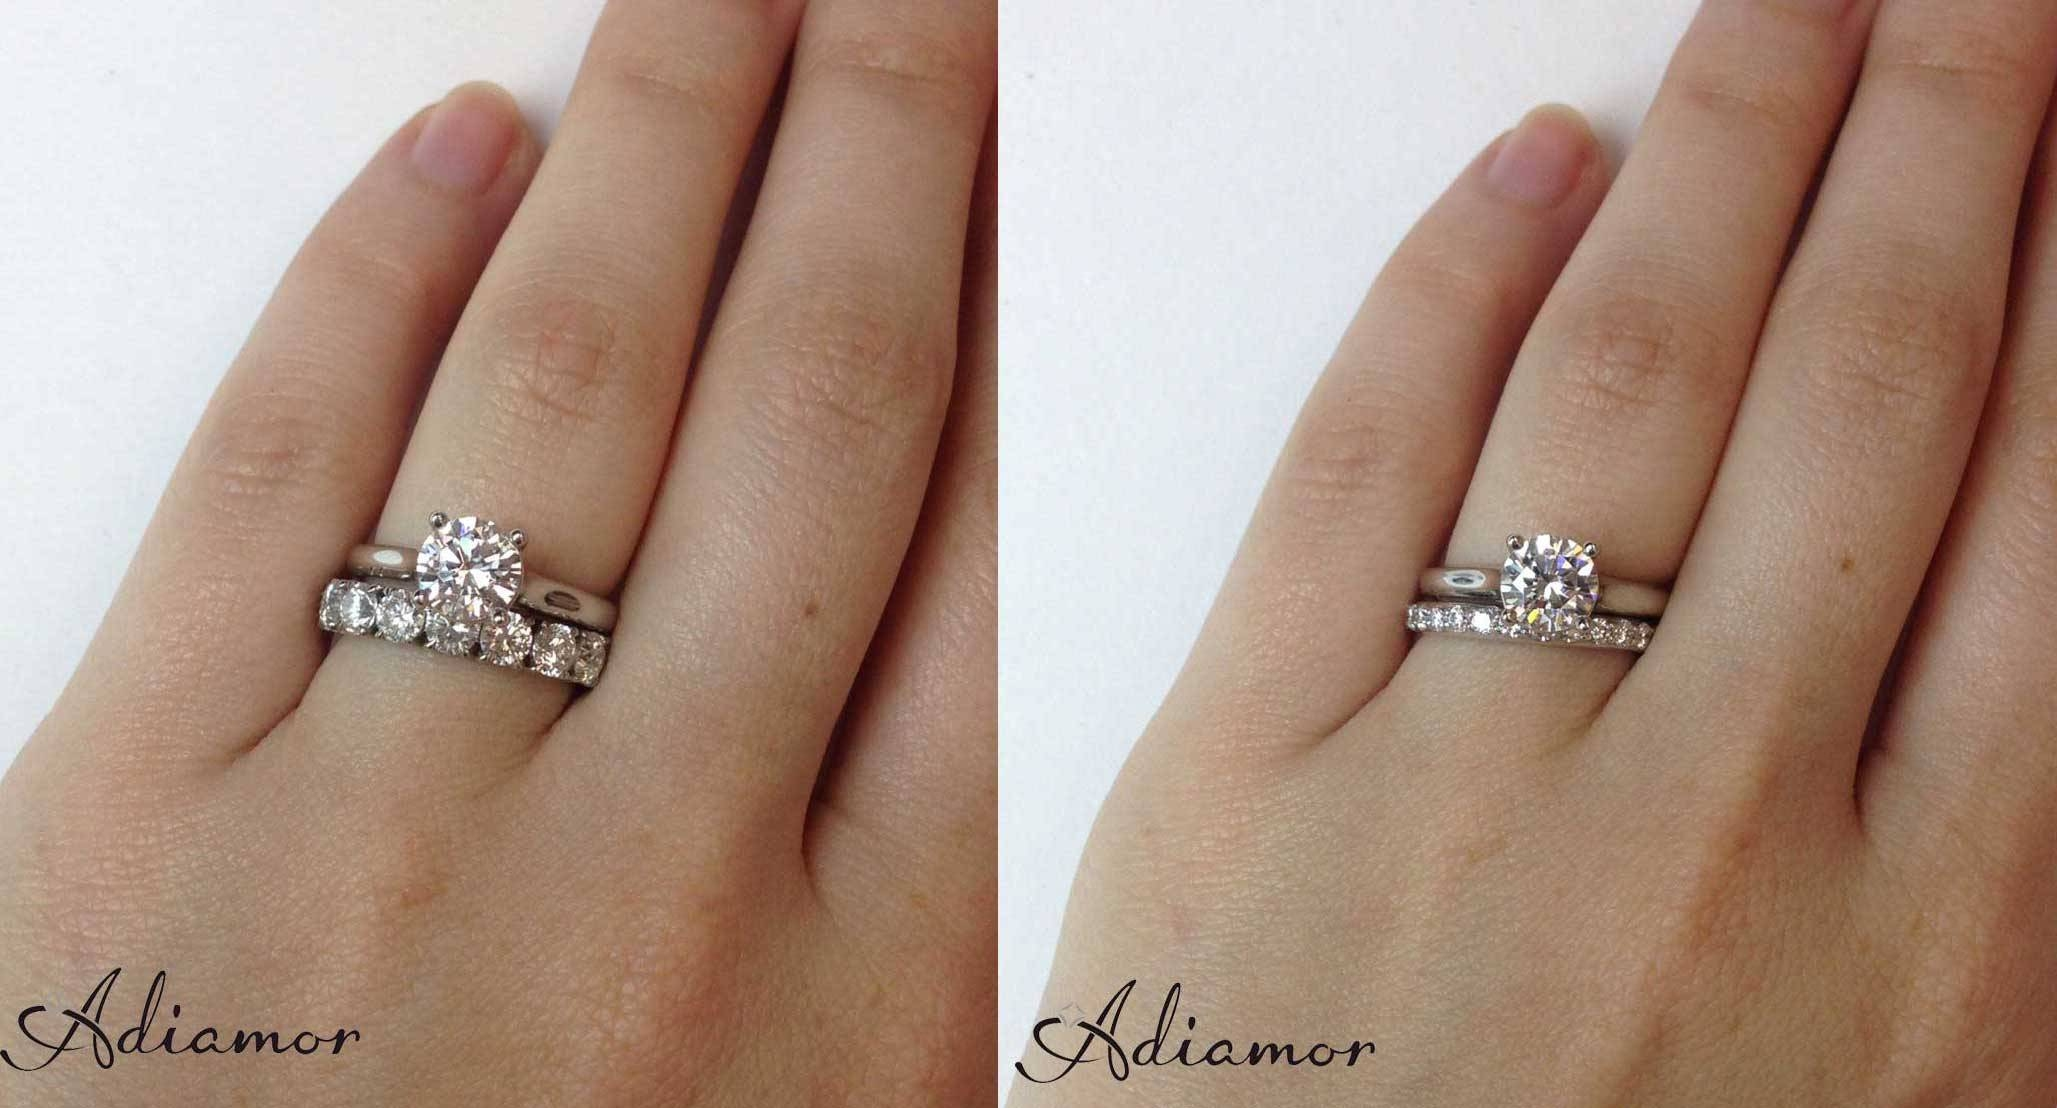 How Do People Like To Wear Wedding Bands? | Adiamor For Engagement Rings Wedding Bands (View 7 of 15)